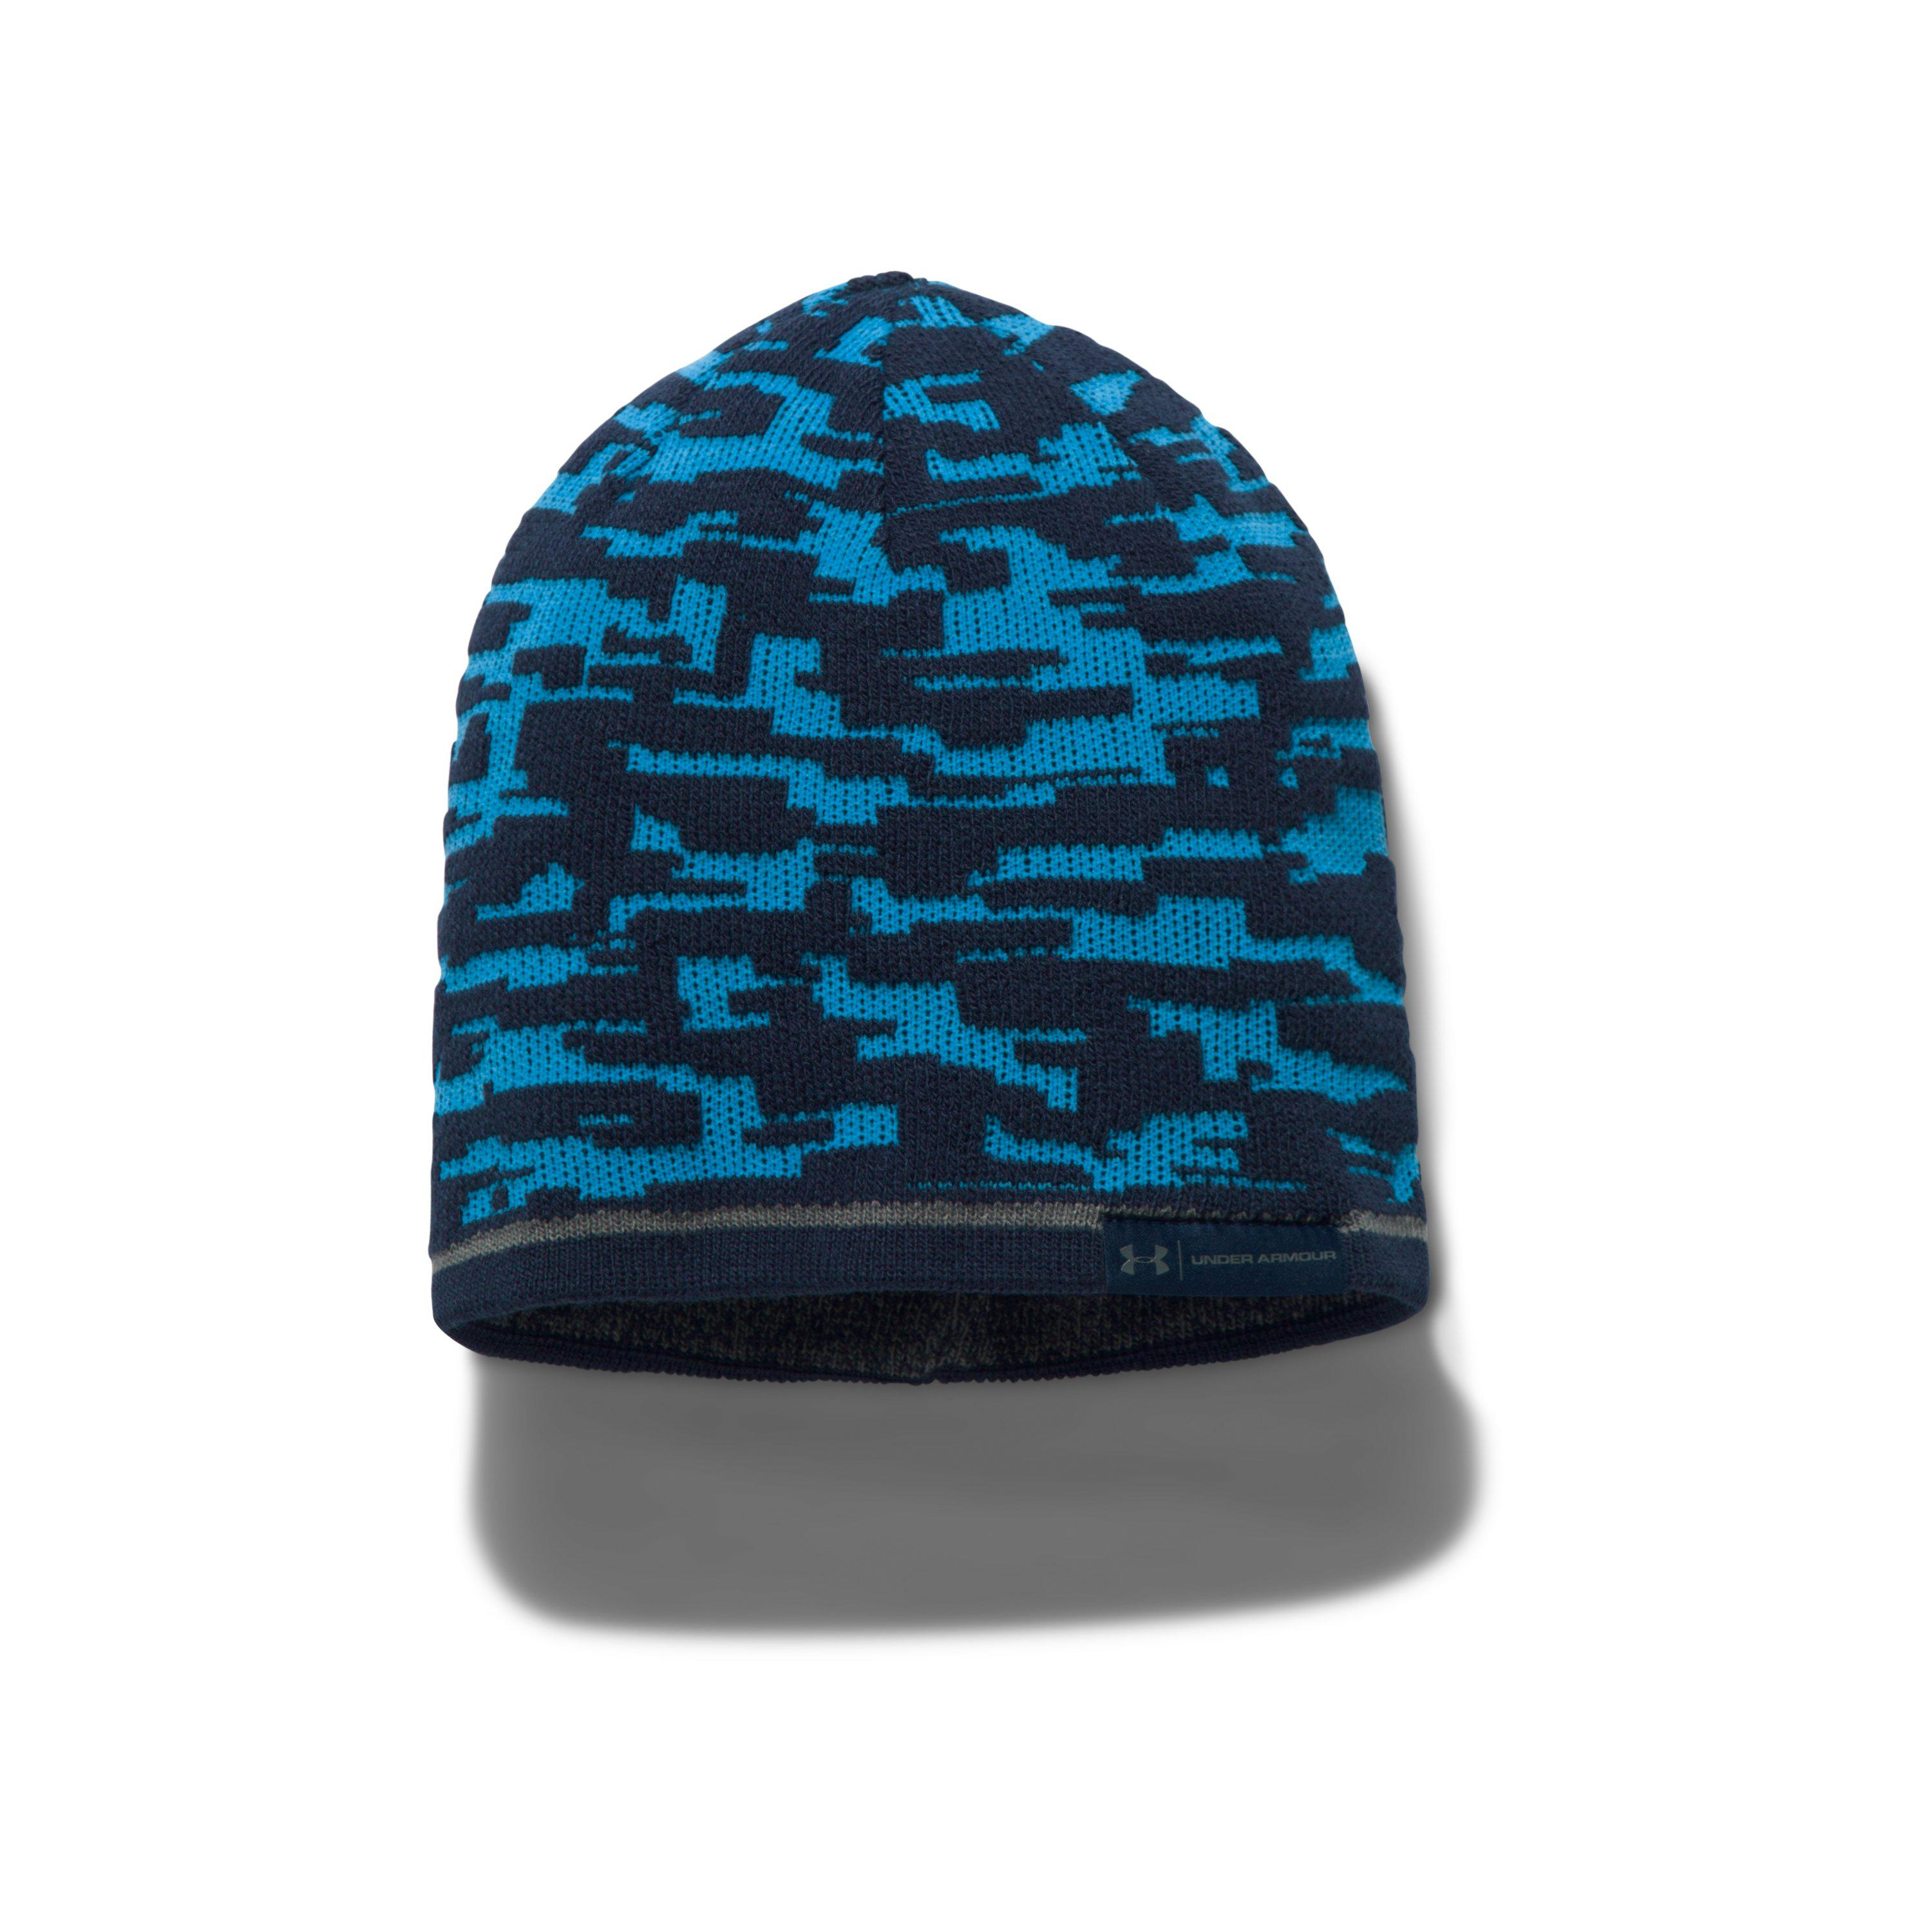 Lyst - Under Armour Men s Ua Reversible Graphic Beanie in Blue for Men ba395a0a6b82